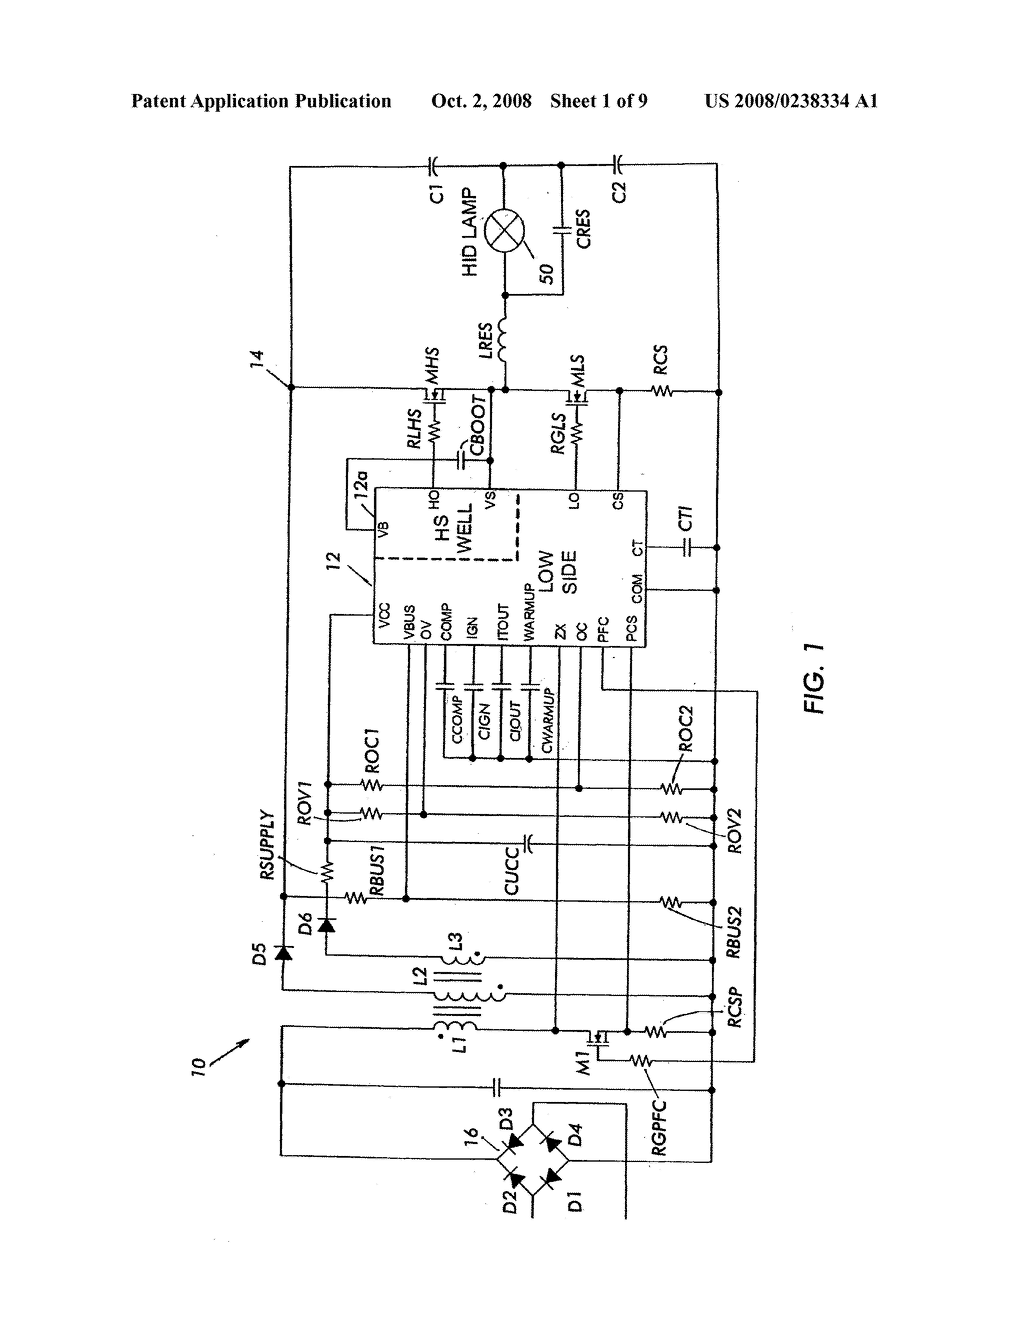 hight resolution of hid lamp ballast circuit diagram schematic and image 02 hid ballast circuit diagram